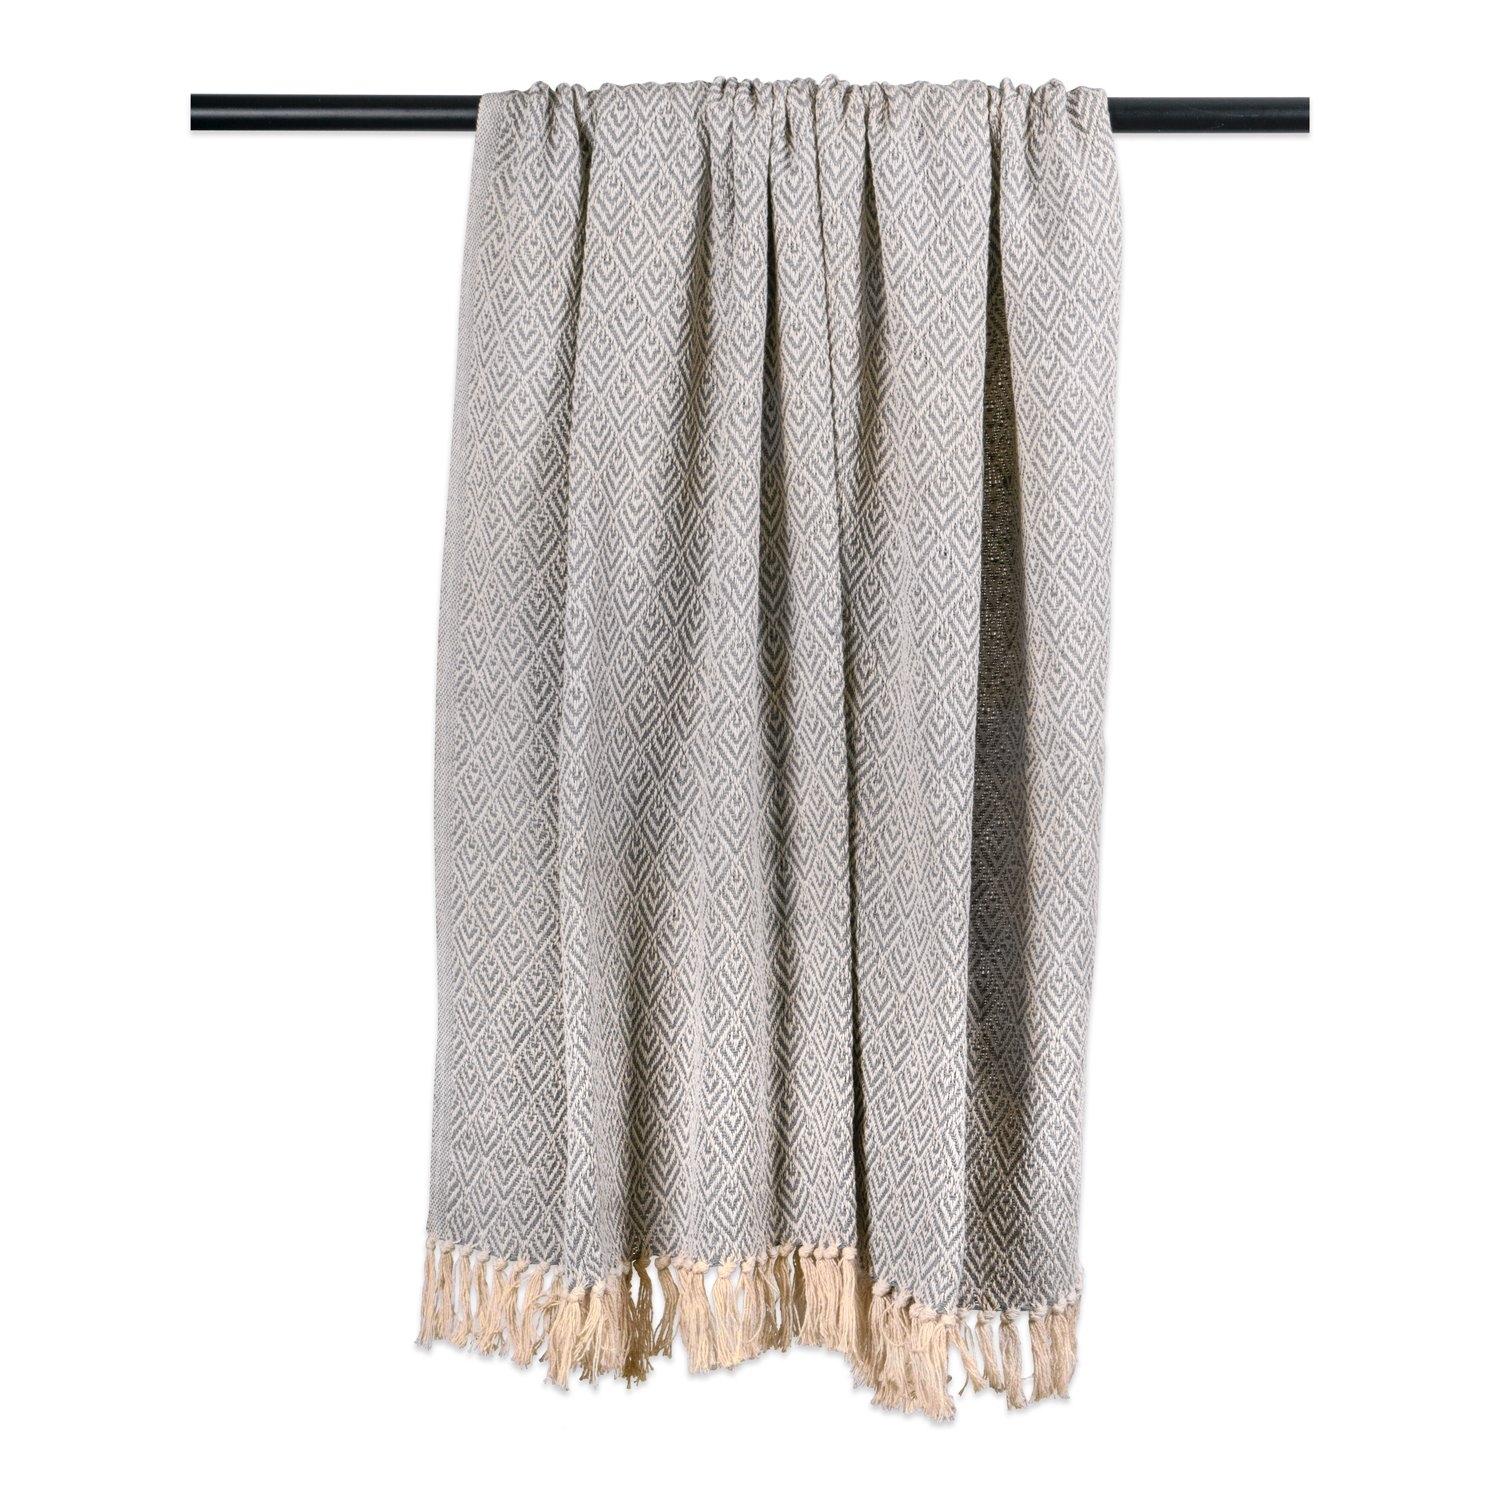 DII Rustic Farmhouse Cotton Diamond Blanket Throw with Fringe for Chair, Couch, Picnic, Camping, Beach, Everyday Use, 50 x 60 - Diamond Gray by DII (Image #4)